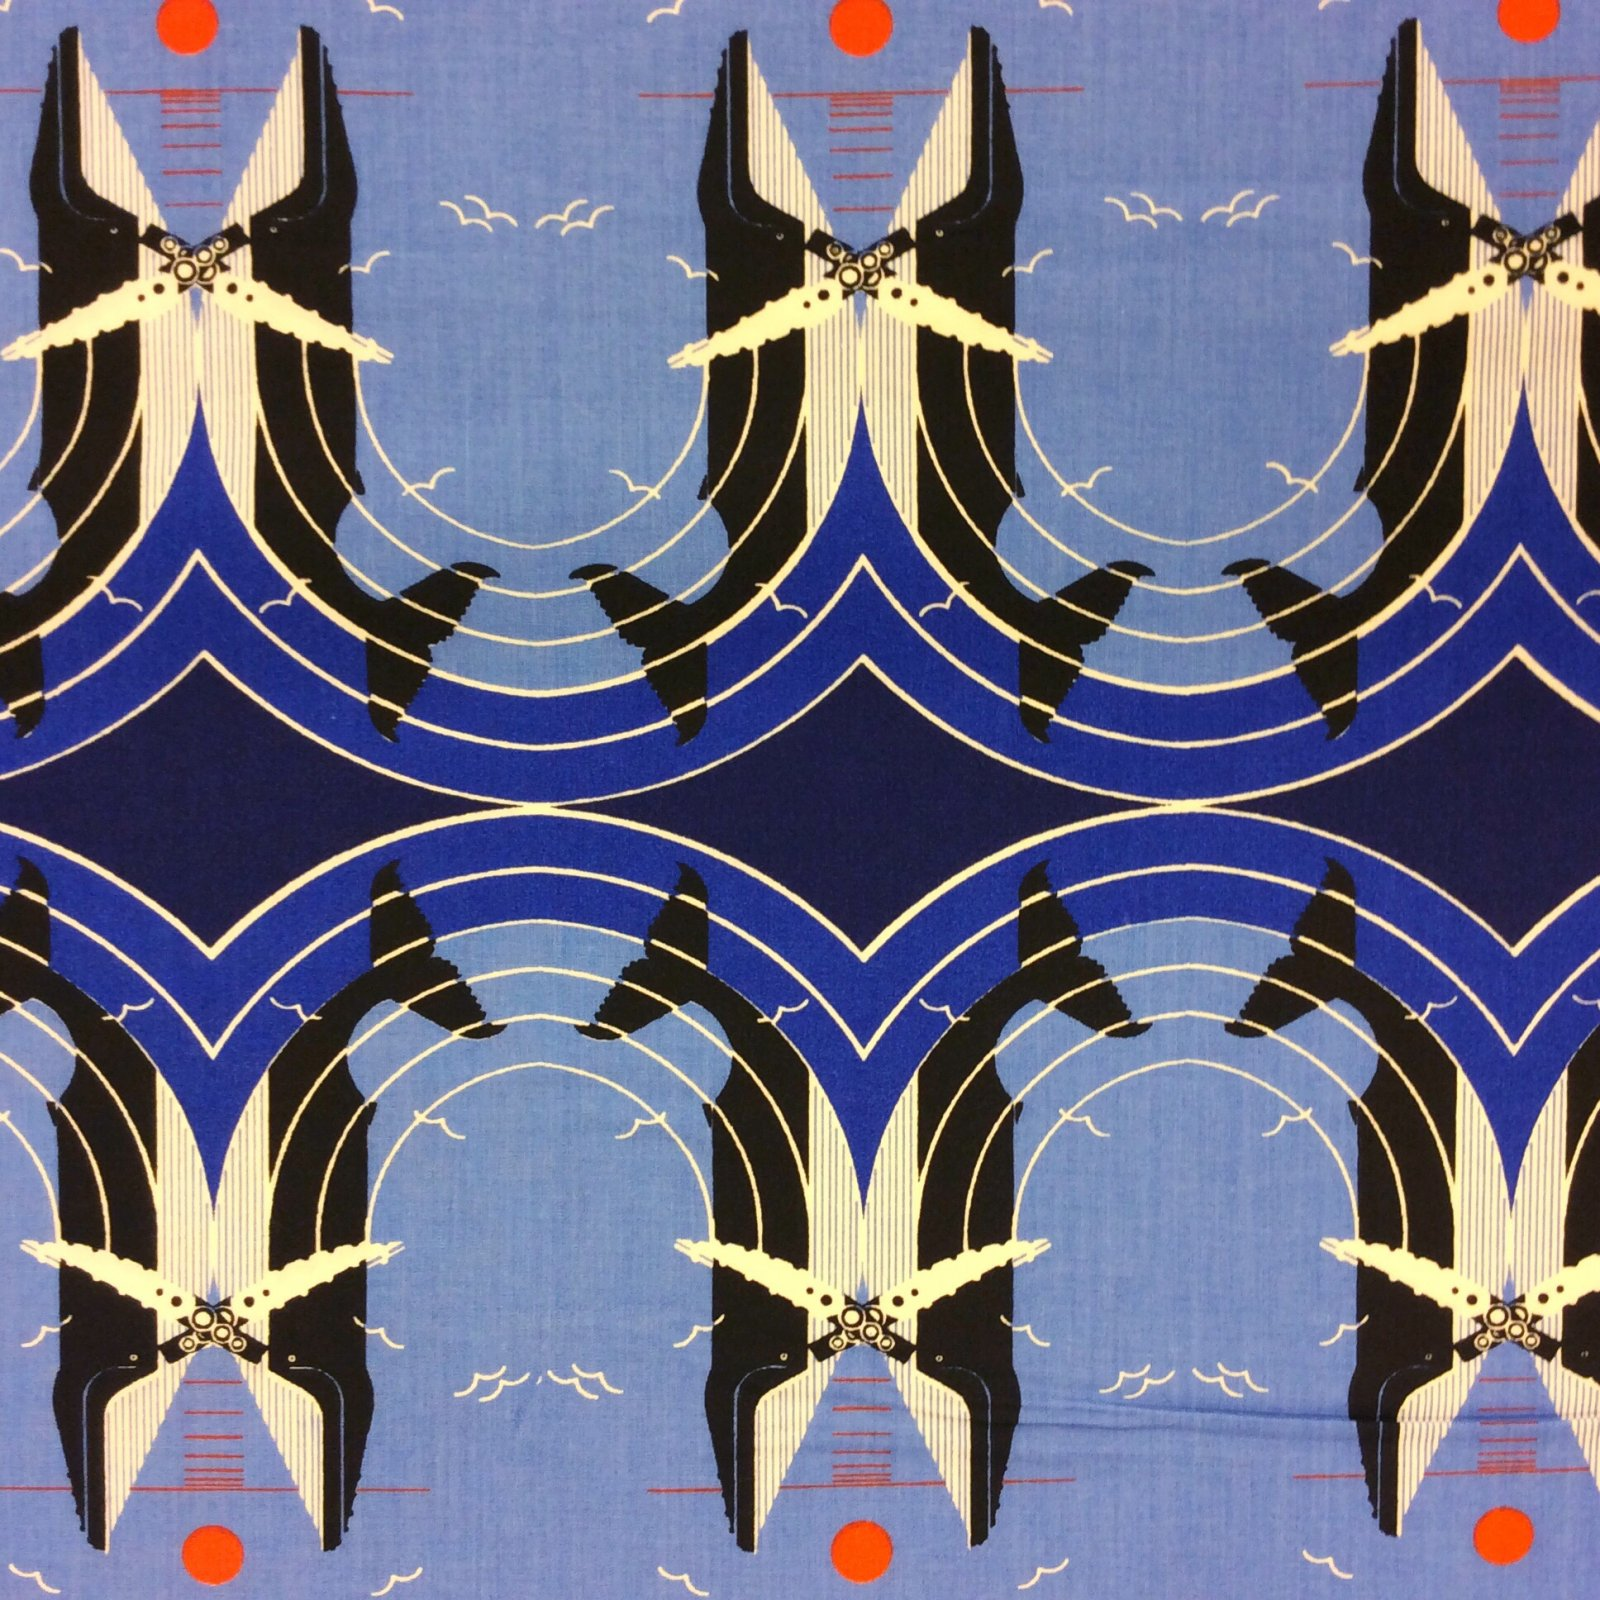 Charley Harper Whale Love on the Richter Scale Fibonacci Arc Ocean Water Sunset Organic Cotton Fabric CHB40